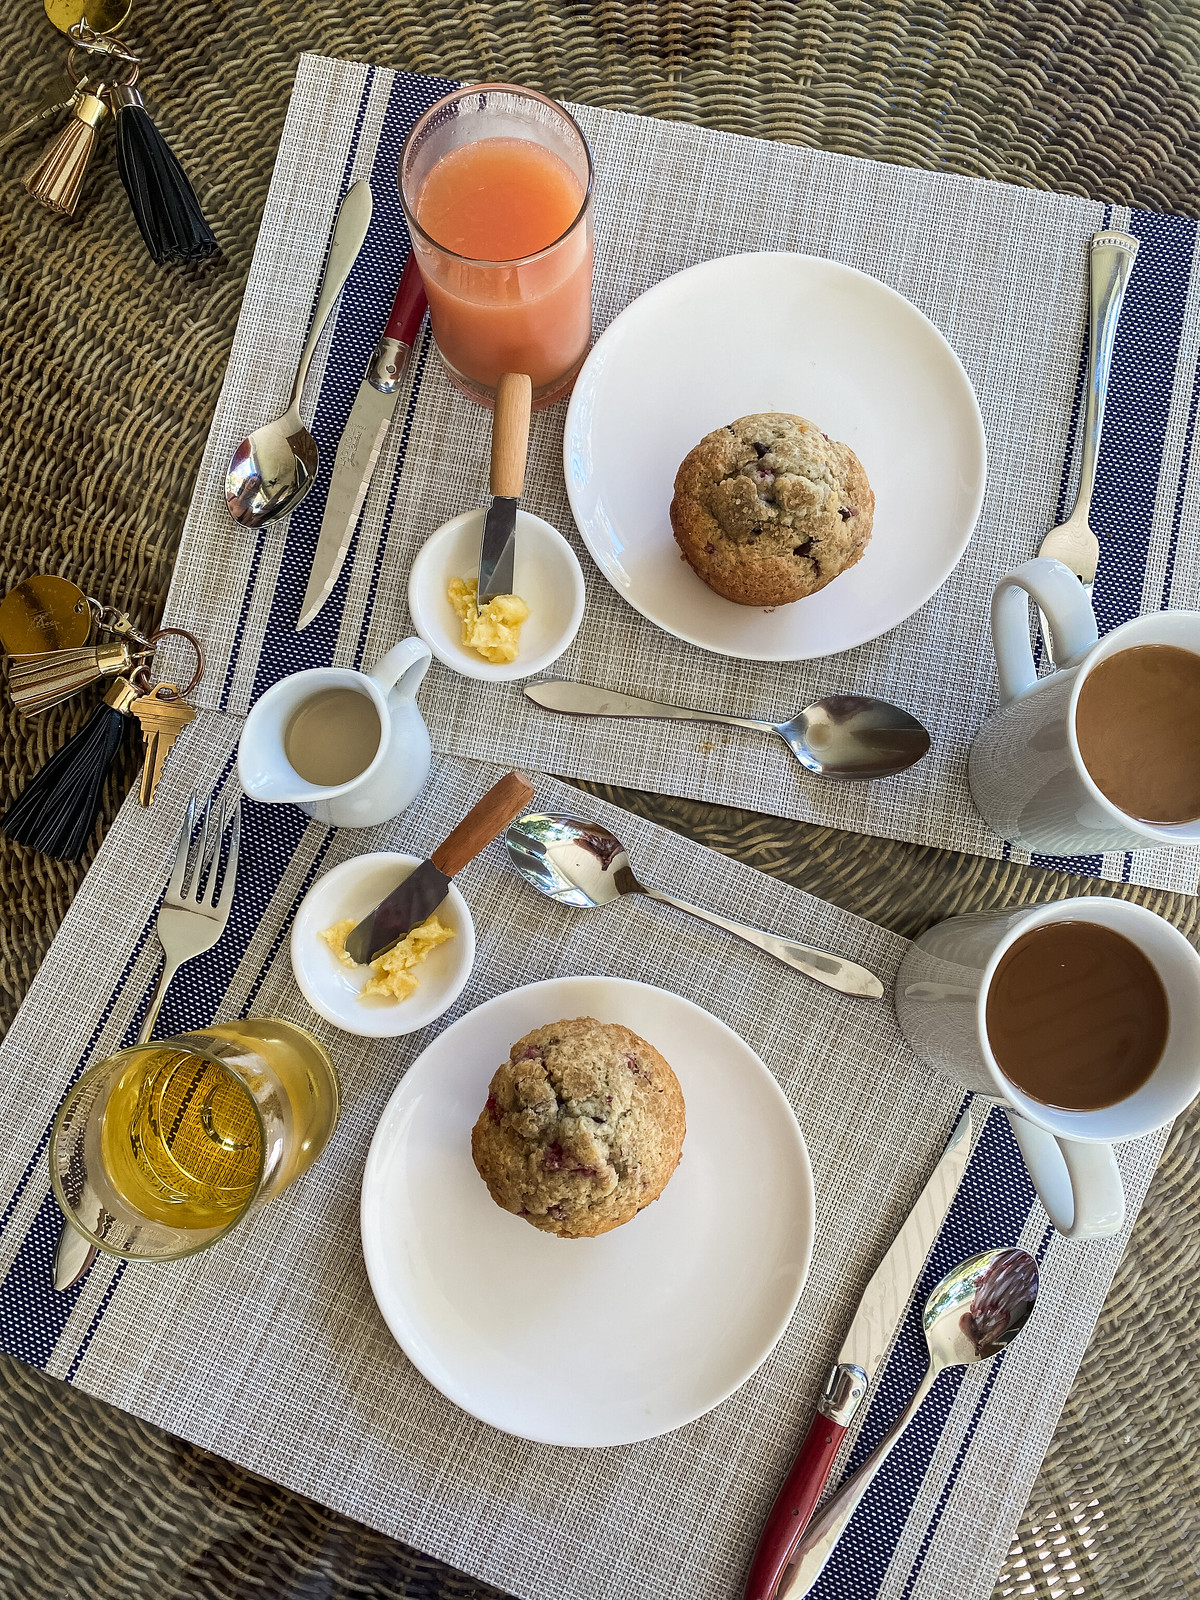 Homemade Muffin Breakfast   The Harvest Inn Bed & Breakfast   Peconic, NY   Where to Stay on the North Fork of Long Island, NY   Best New York Bed & Breakfasts   48 Hours on the North Fork, Long Island   The Perfect Weekend Itinerary   Best Things to Do on The North Fork   Explore Long Island New York   Weekend in North Fork, LI   North Fork, Long Island Travel Guide   Things to Do & Where to Stay   Weekend Trip Out East   2 Days in the North Fork   Top Things to do in Long Island